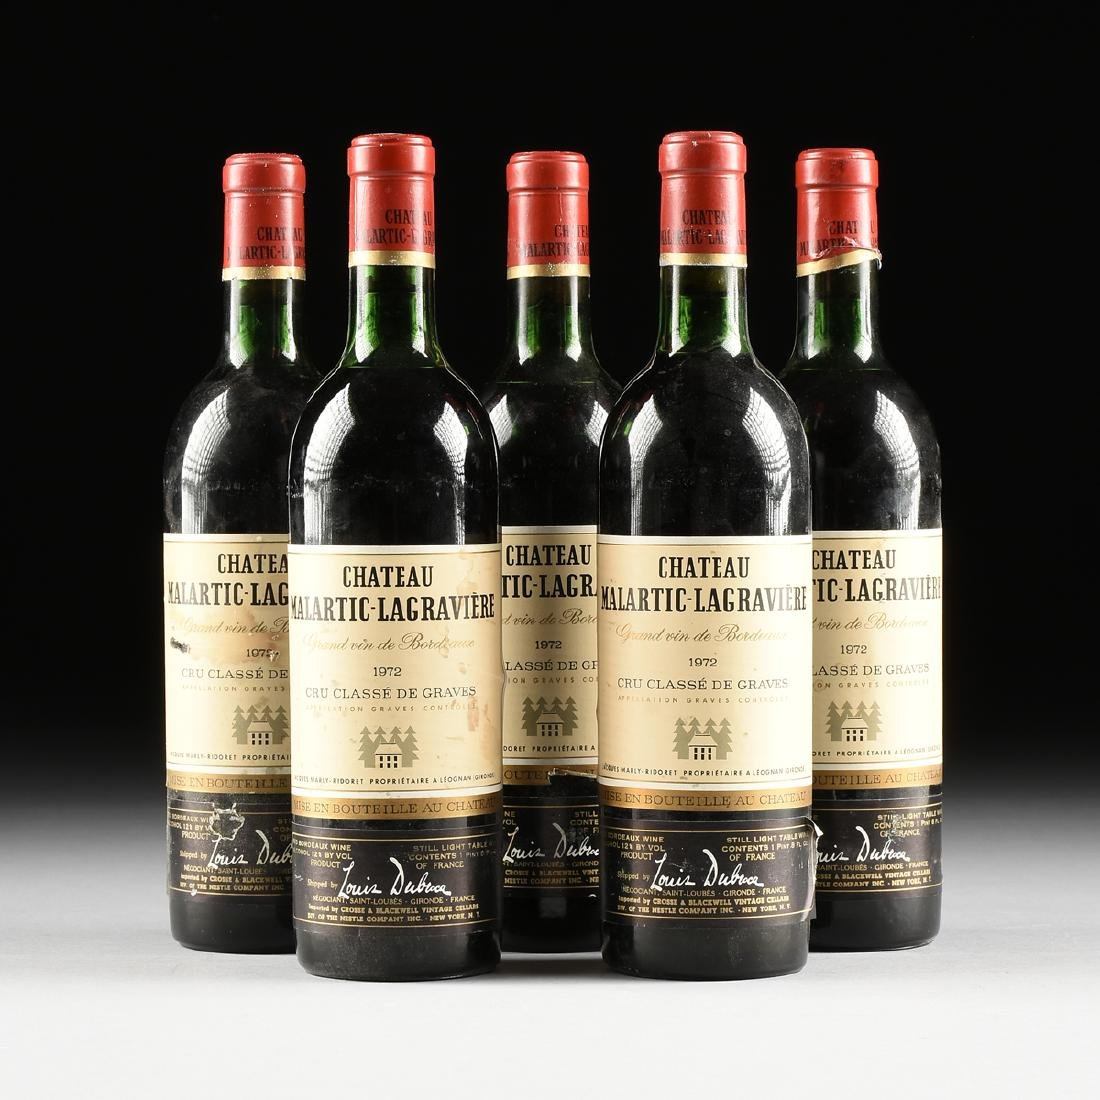 A GROUP OF FIVE BOTTLES OF 1972 CHÂTEAU